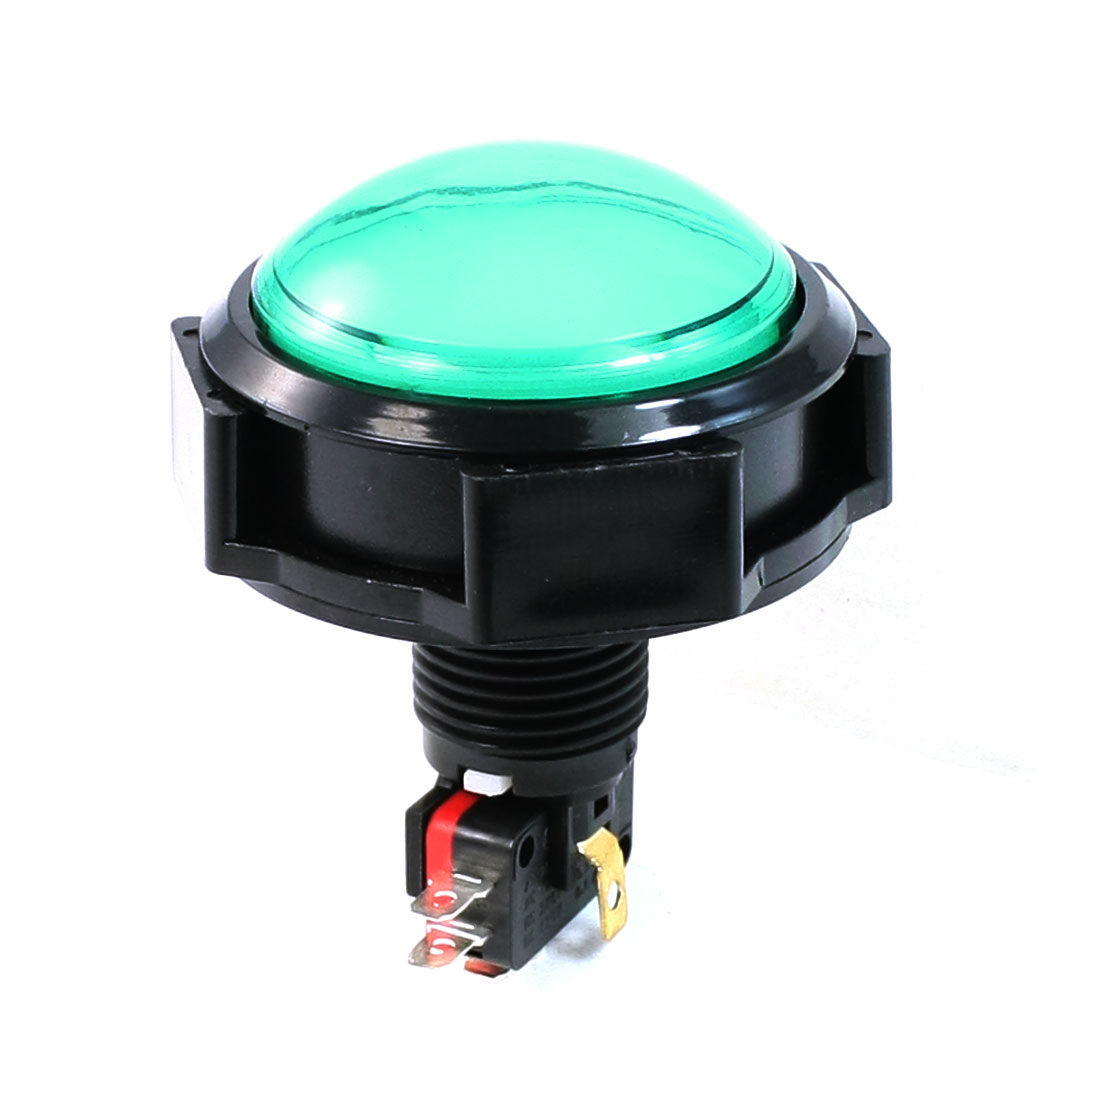 DC 12V Blue Green Pilot Light Momentary Push Button Switch AC 125V/250V 15A